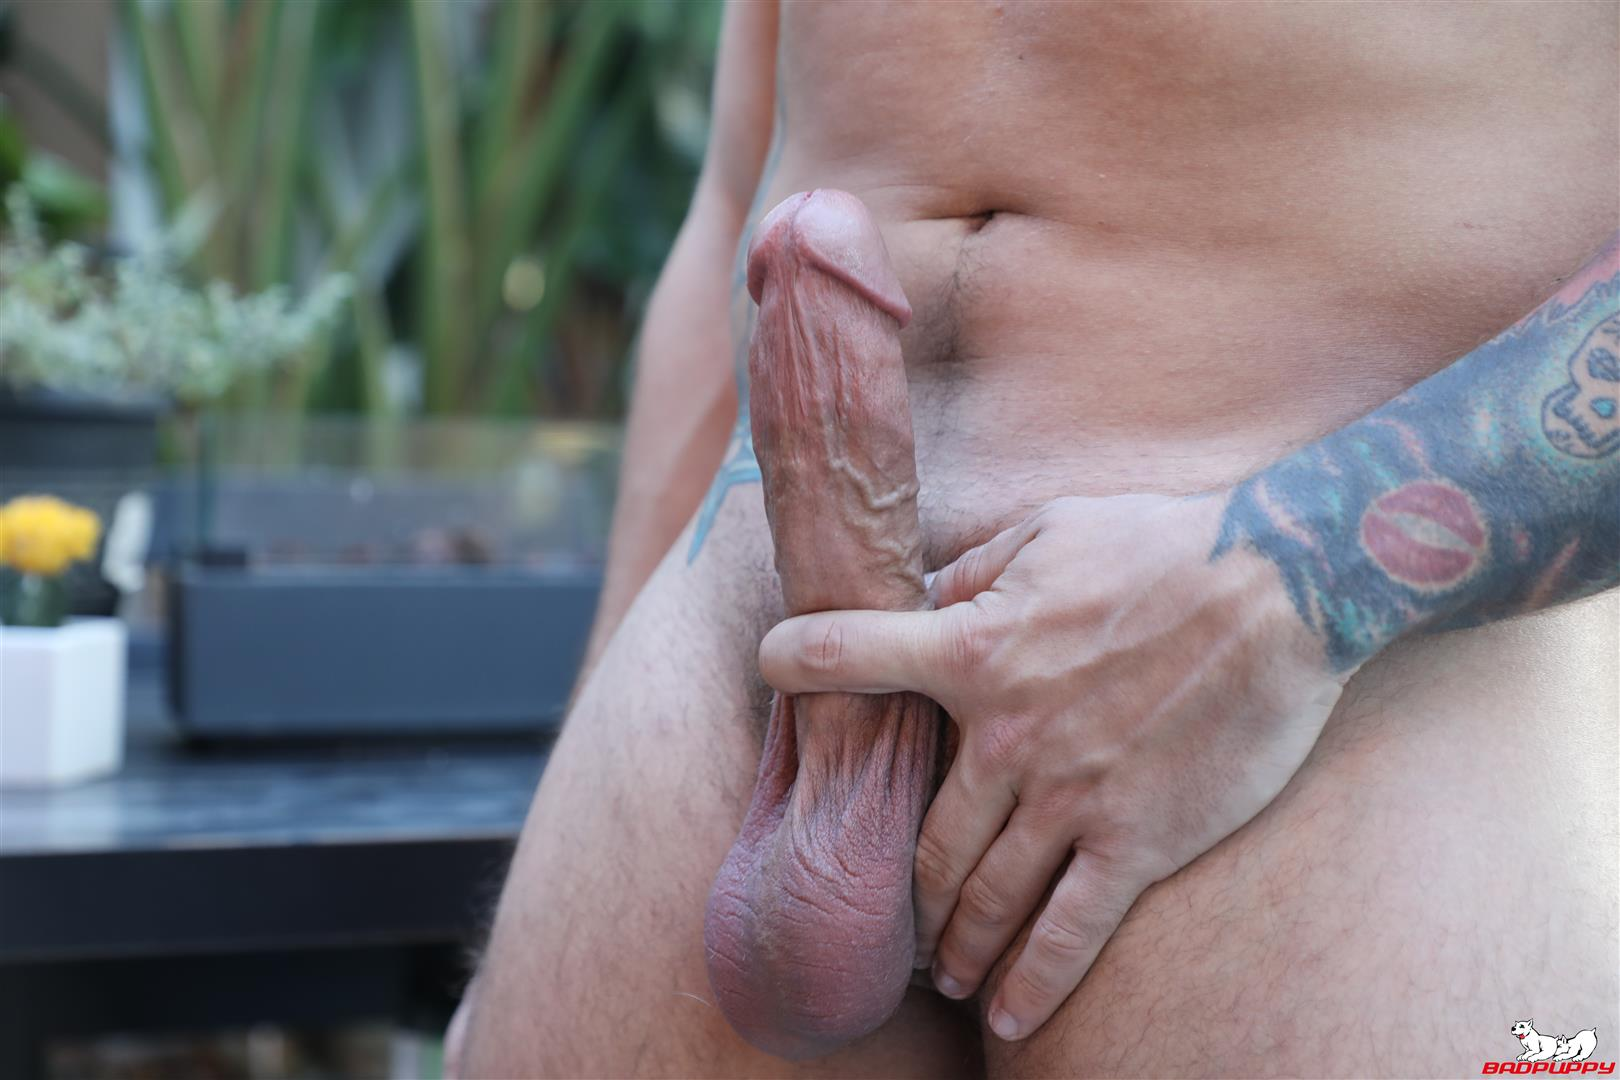 Badpuppy-Eddie-Danger-Thick-Boy-Stroking-His-Fat-Cock-Cum-Video-07 Thick Go-Go Boy Stokes His Hard Fat Cock Until He Cums